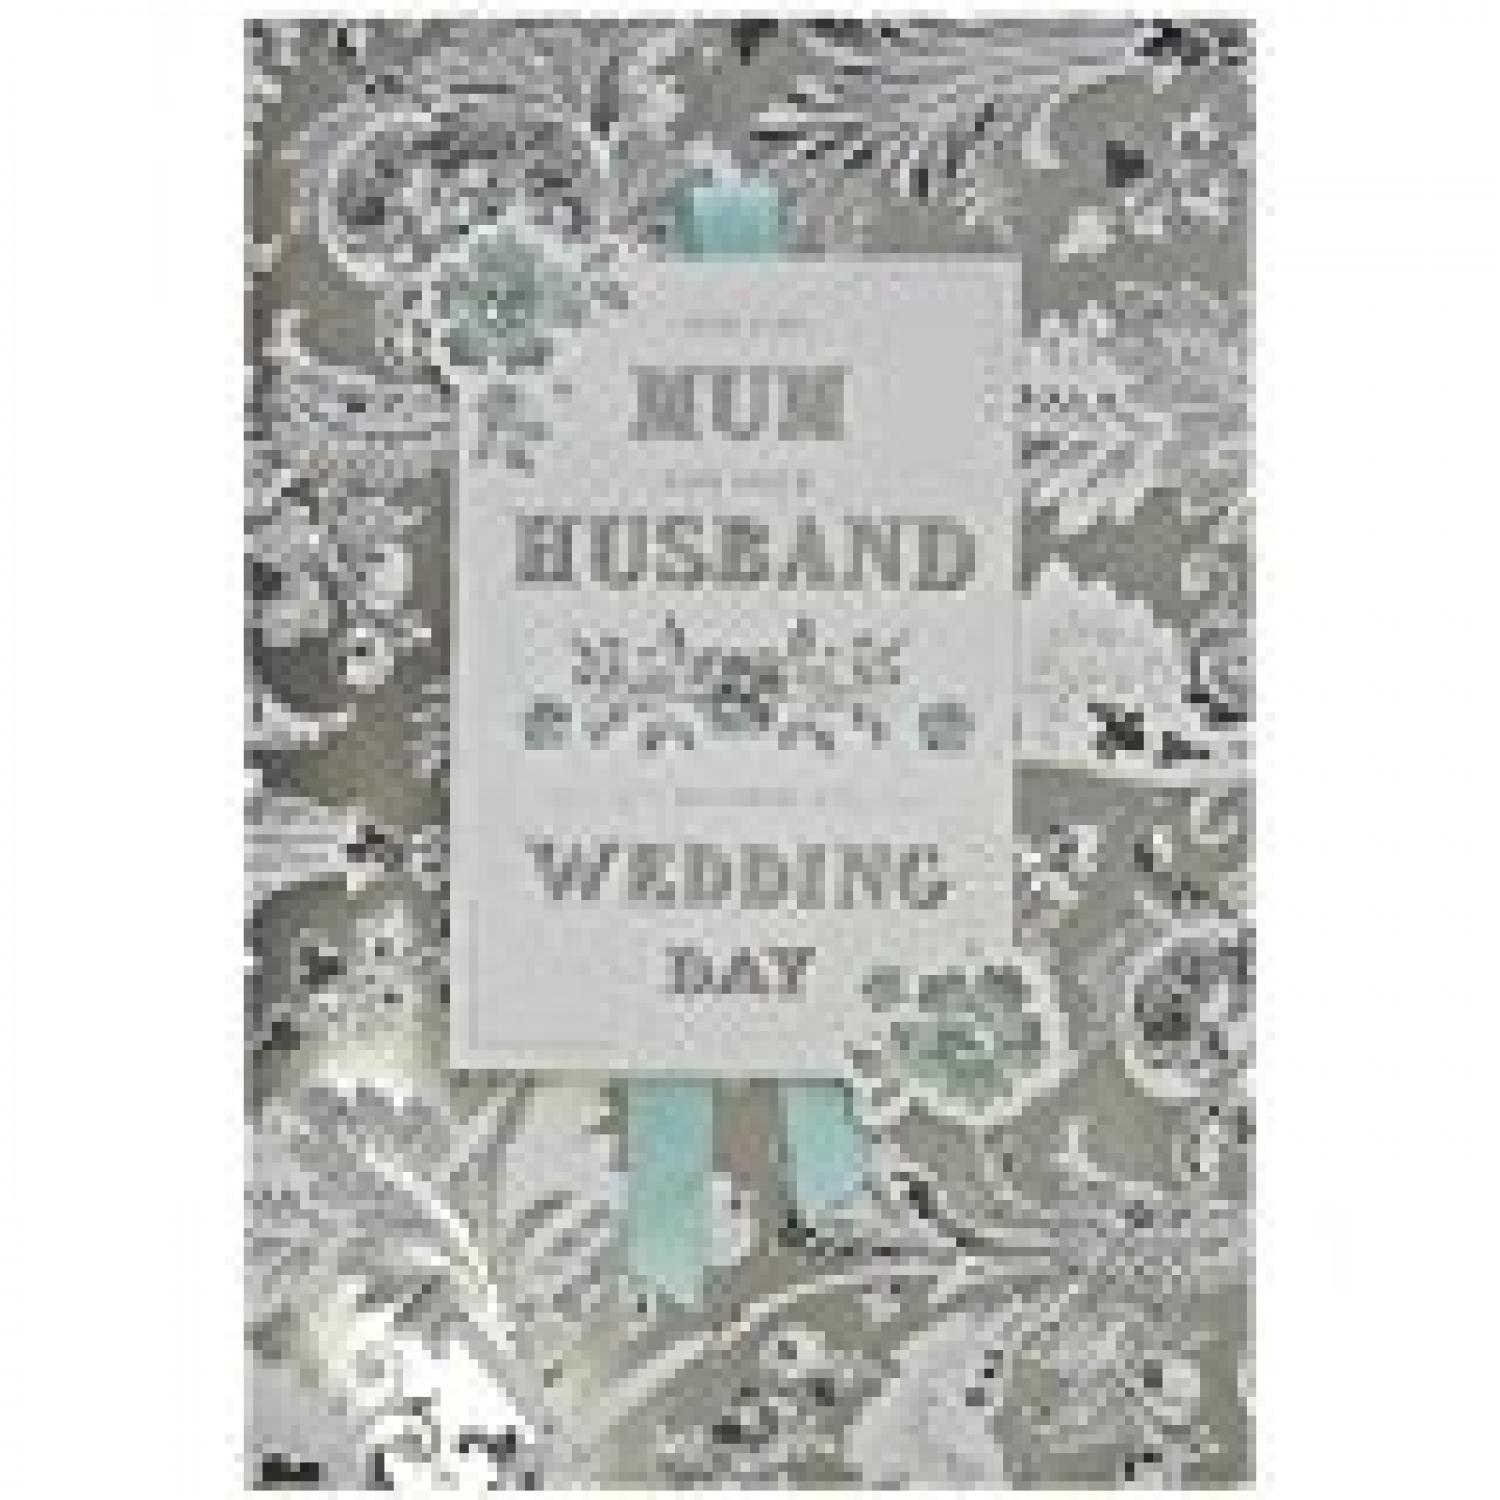 Mum and Husband wedding day card